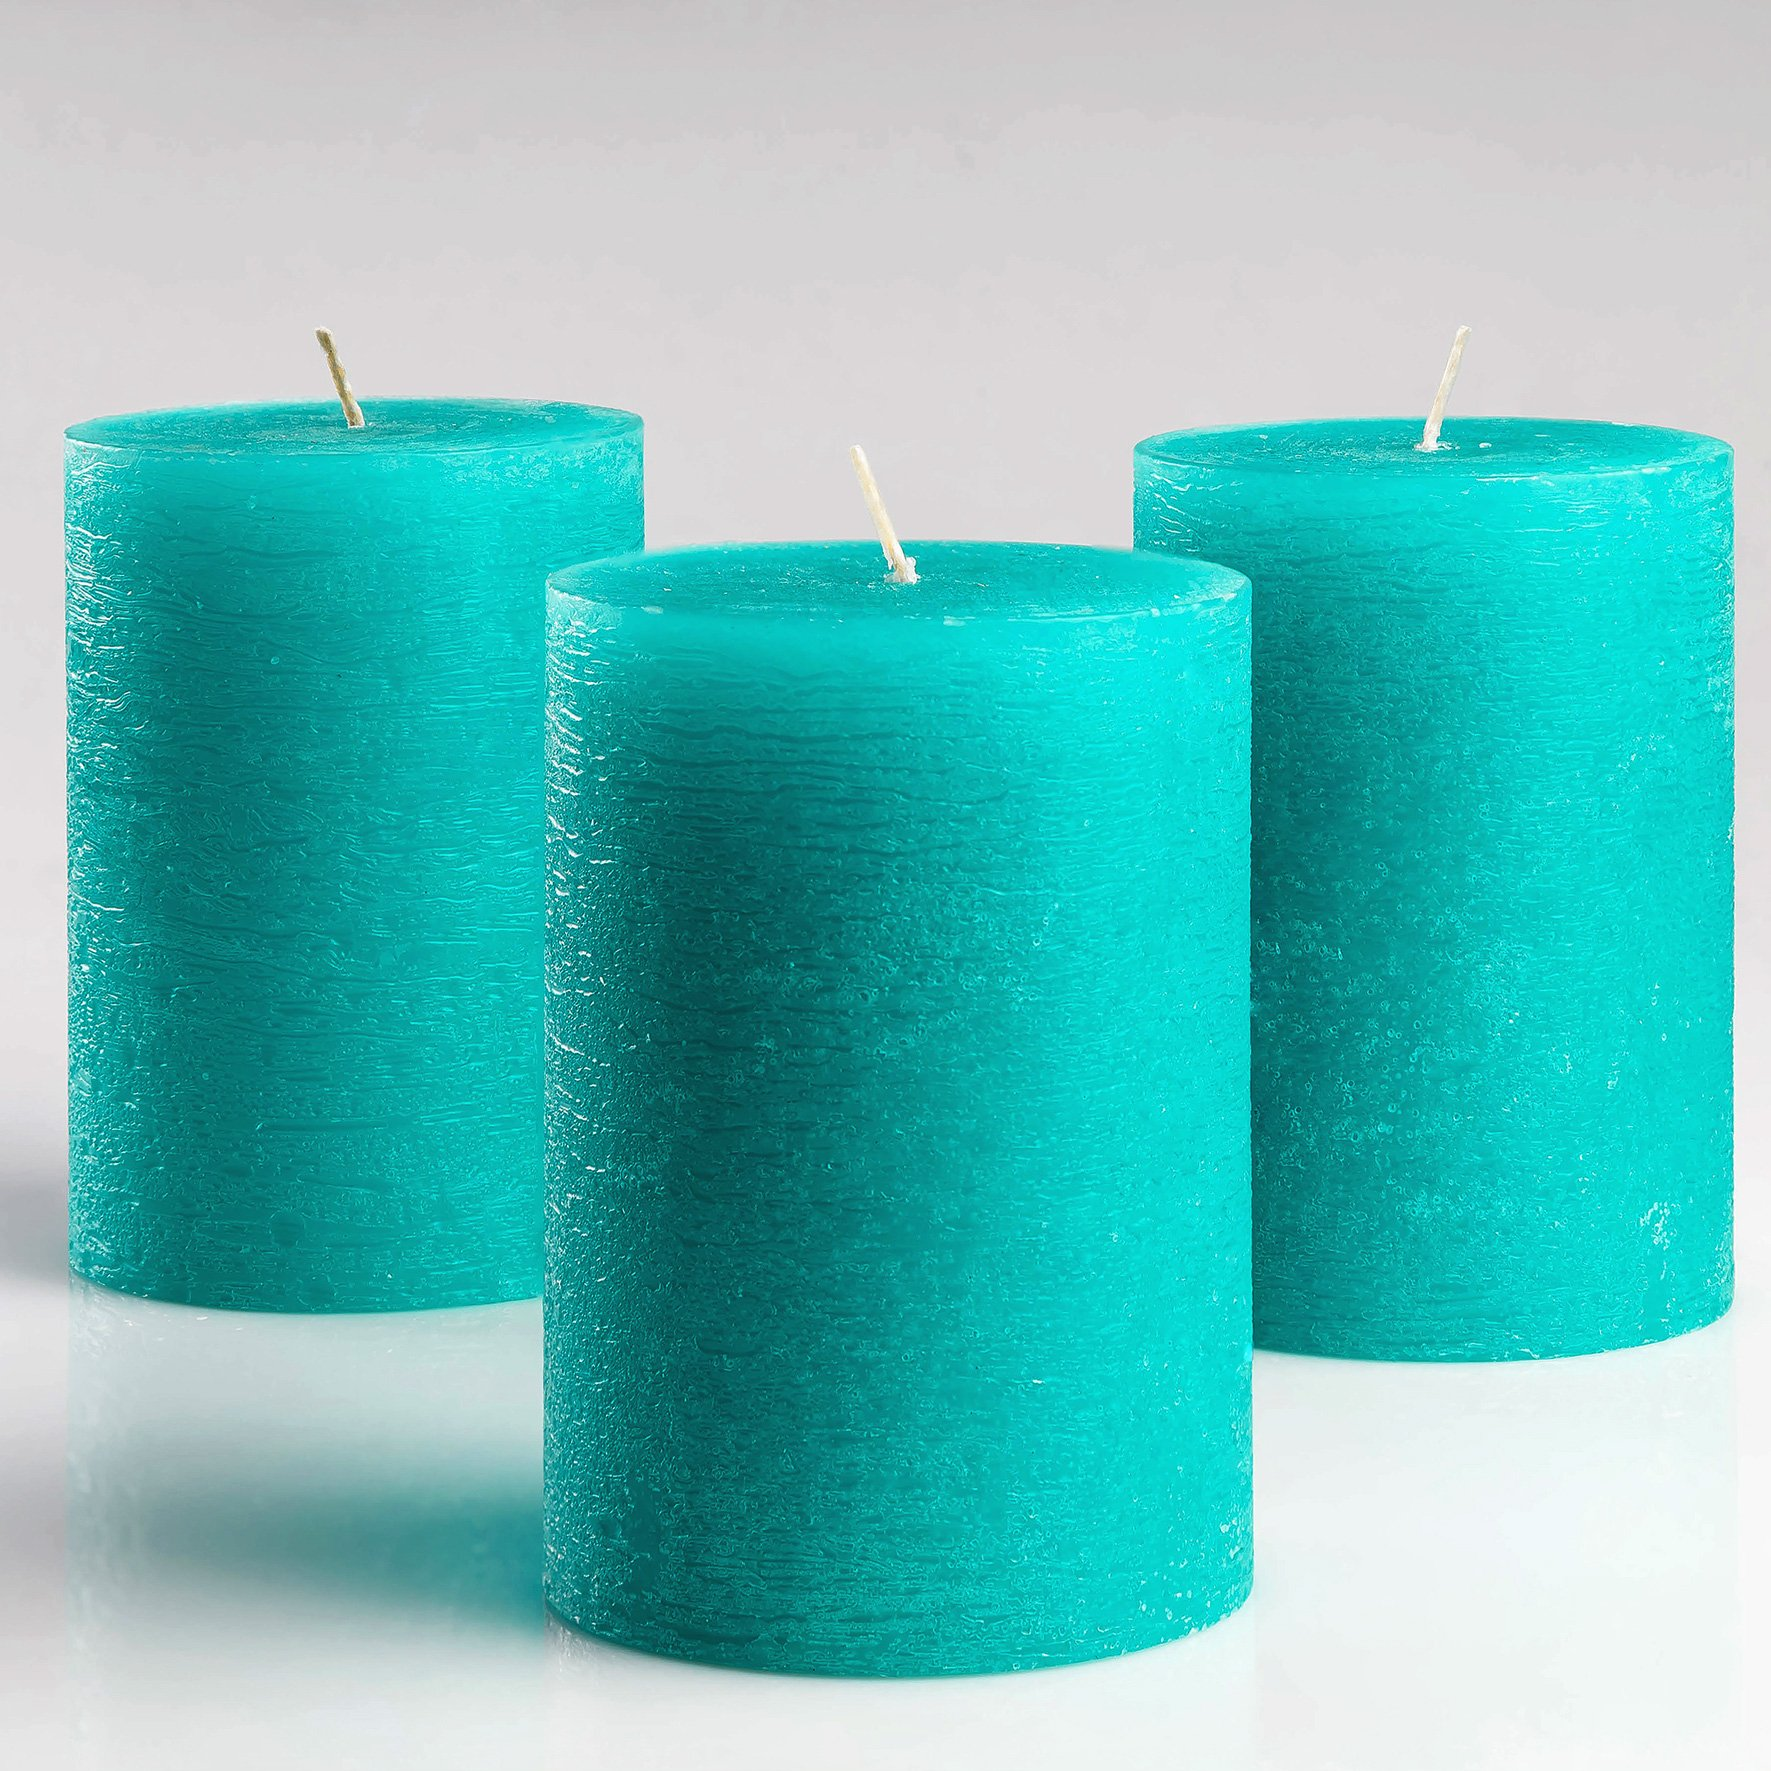 Set of 3 Turquoise/Teal Pillar Candles 3'' x 4'' Unscented Fragrance-Free for Weddings, Church, Home Decoration, Restaurants, Spa, Smokeless Cotton Wick